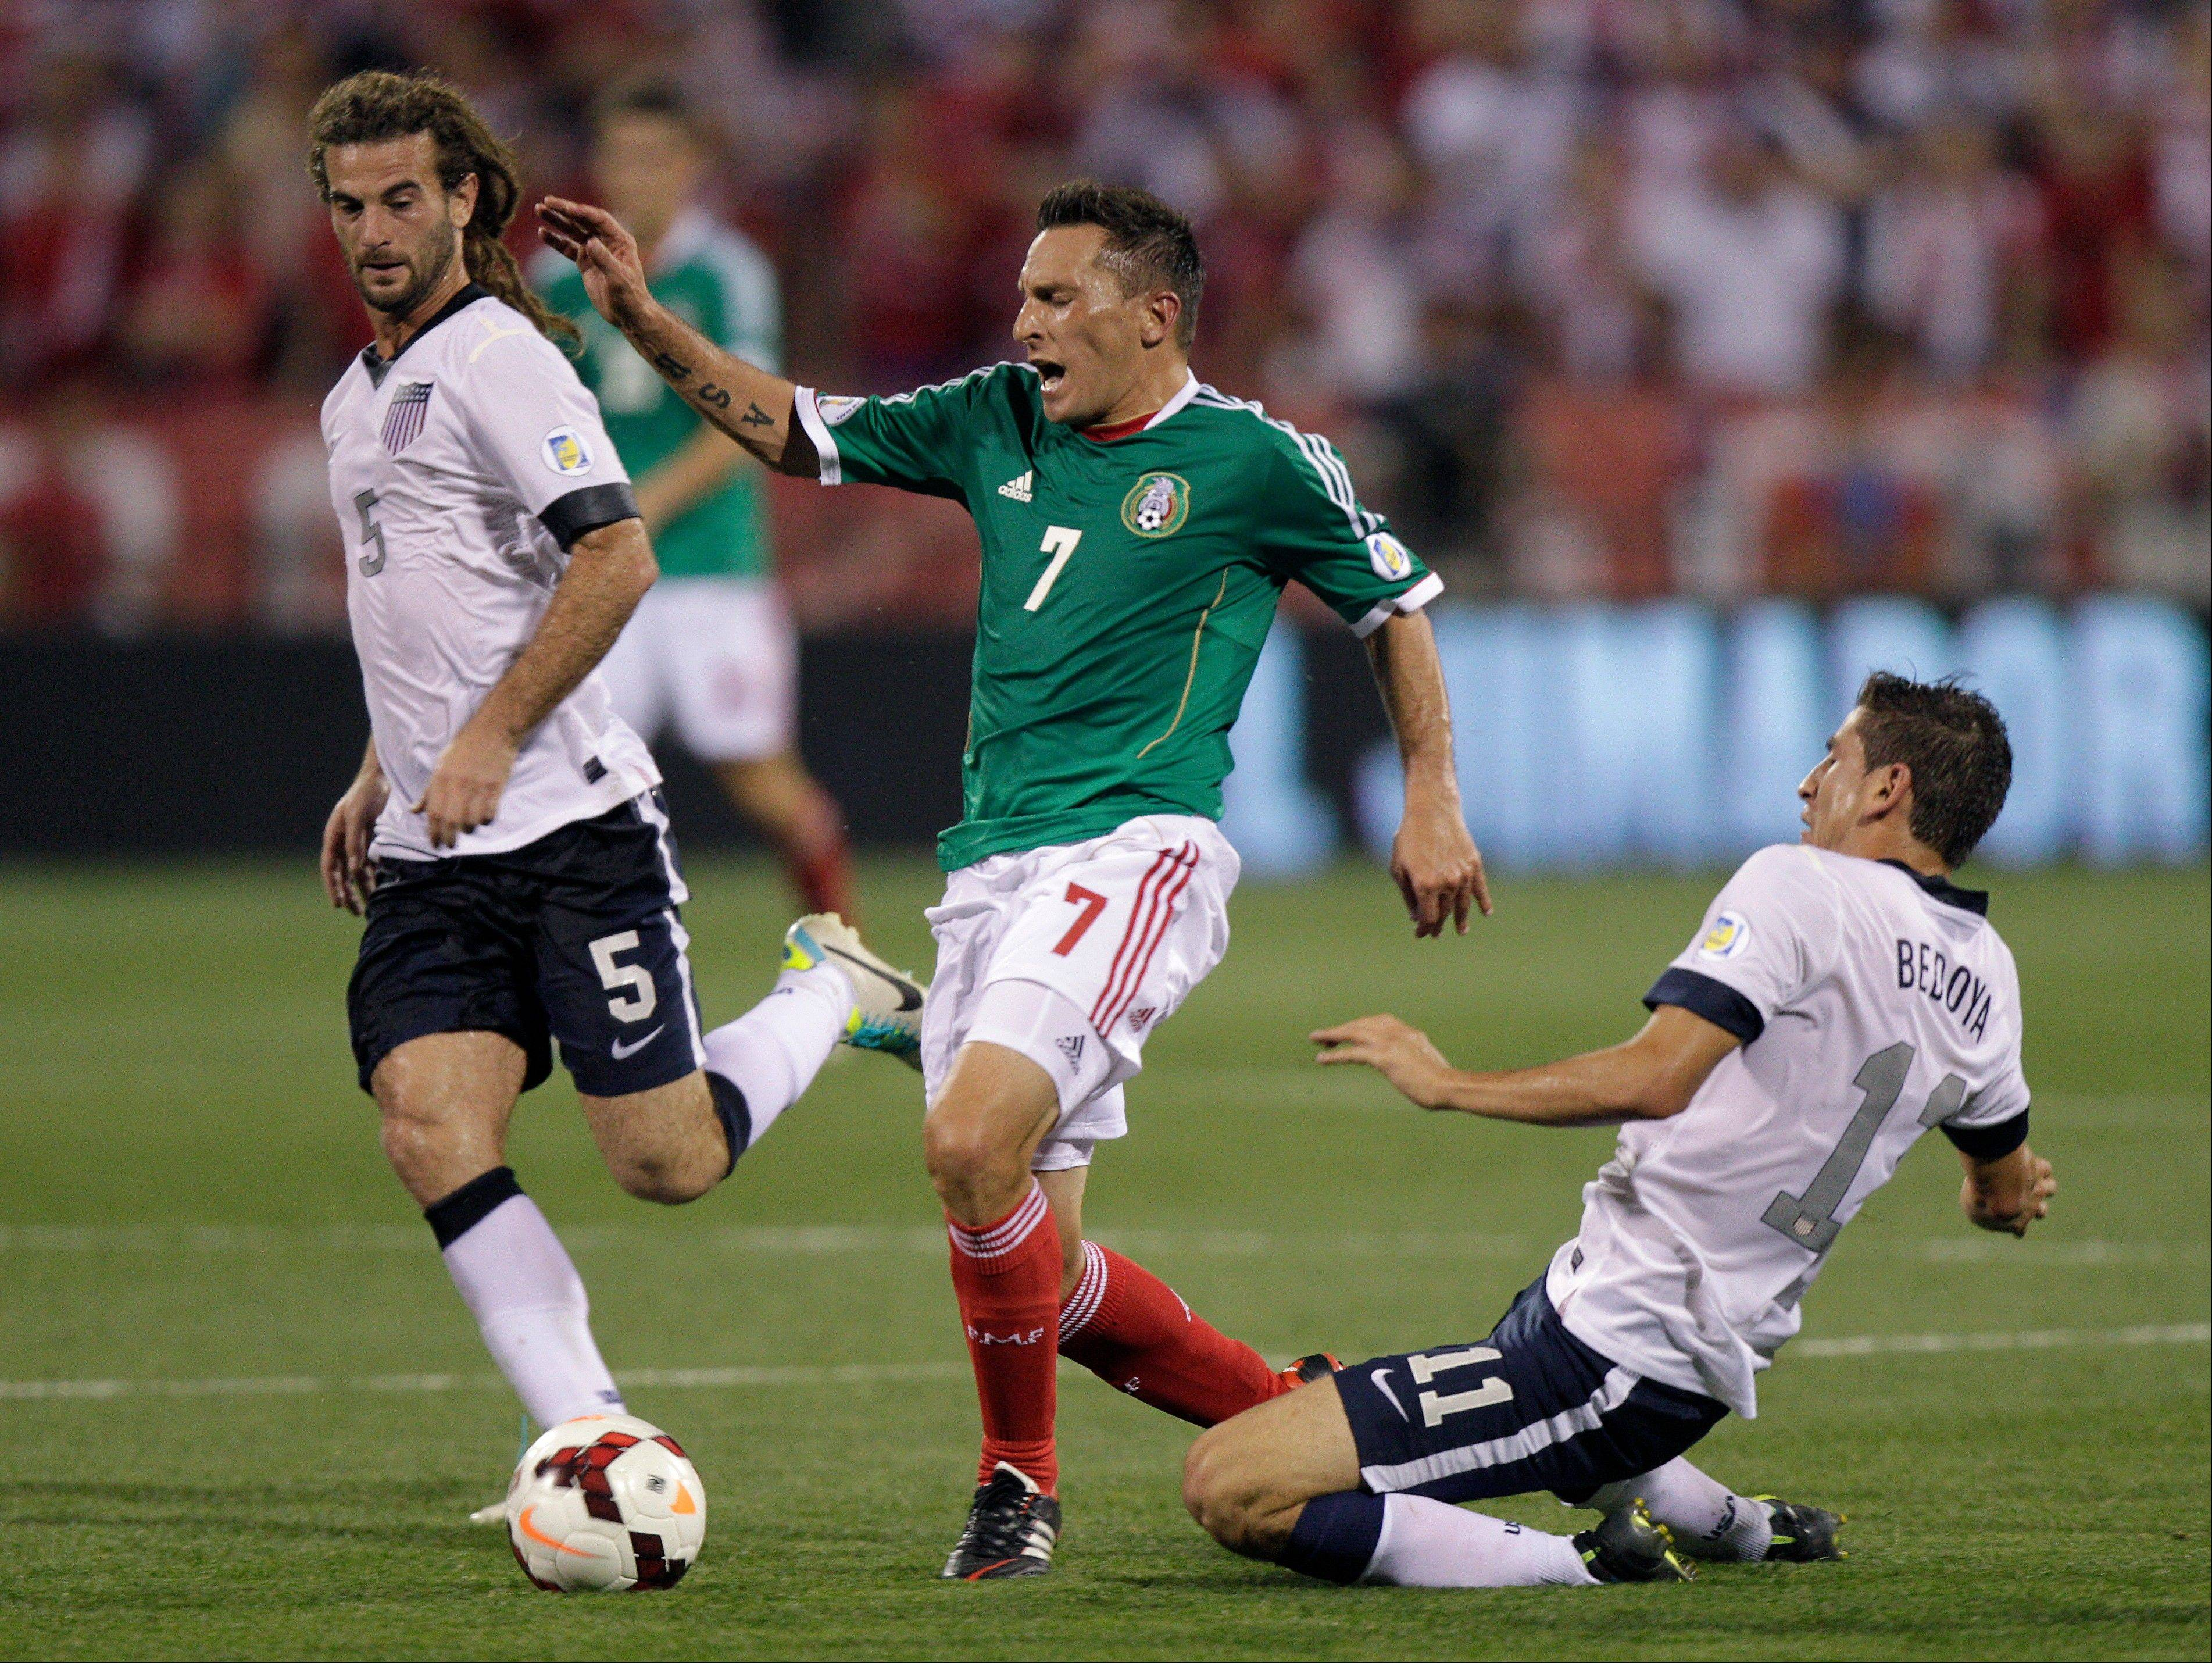 Mexico's Christian Gimenez, center, is tripped by the United States' Alejandro Bedoya, right, as Kyle Beckerman helps to defend during the first half of a World Cup qualifying soccer match Tuesday in Columbus, Ohio.